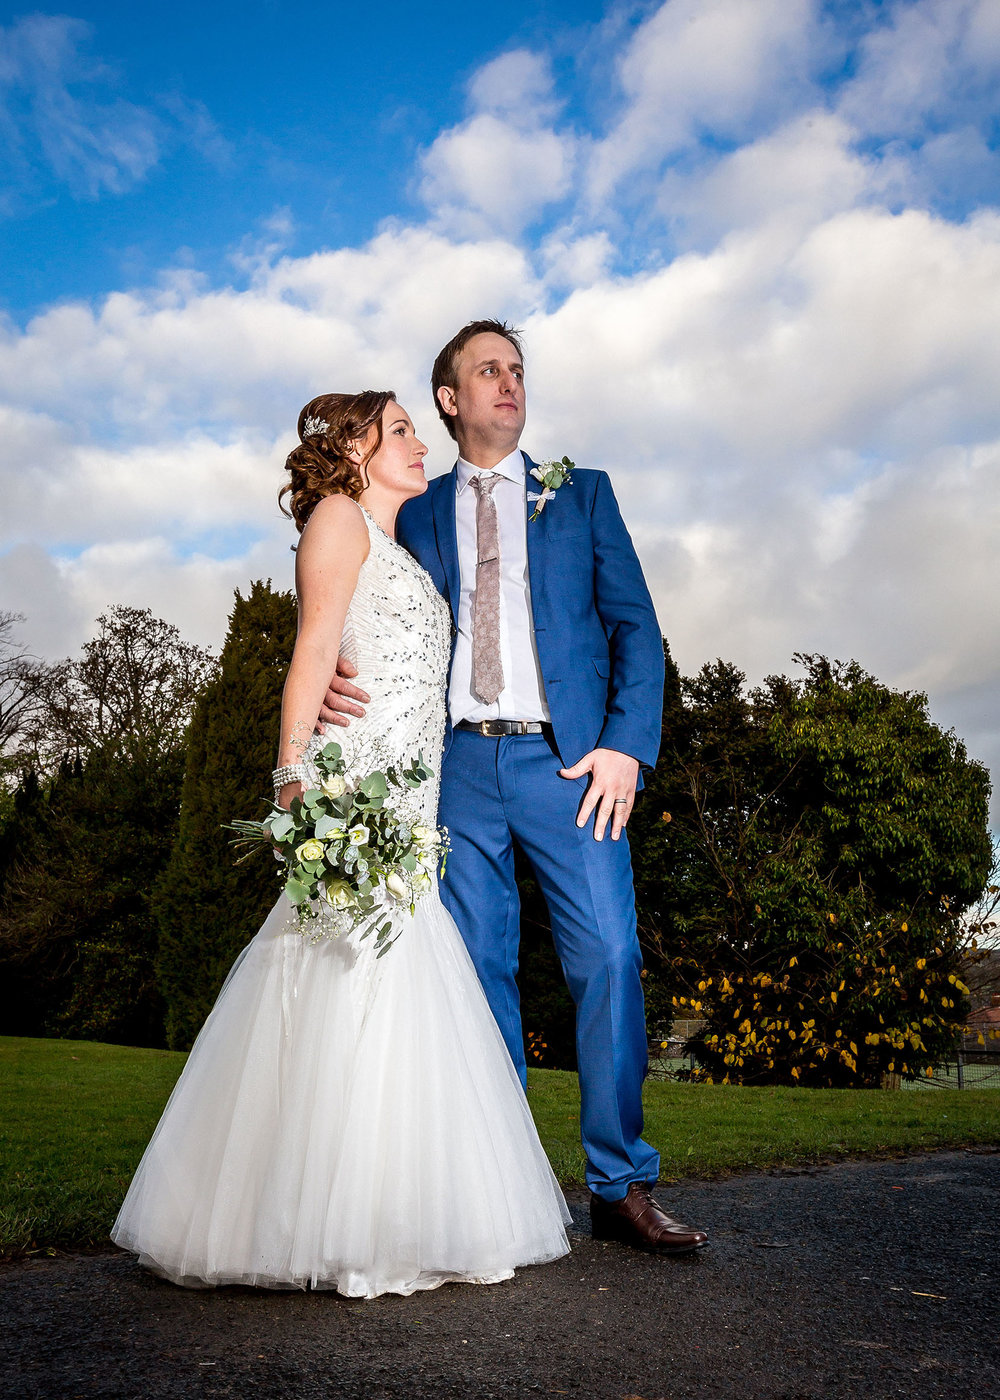 Wedding Photography North East, Durham, Newcastle - Stephen Matthews Photography - Hexham Winter Gardens